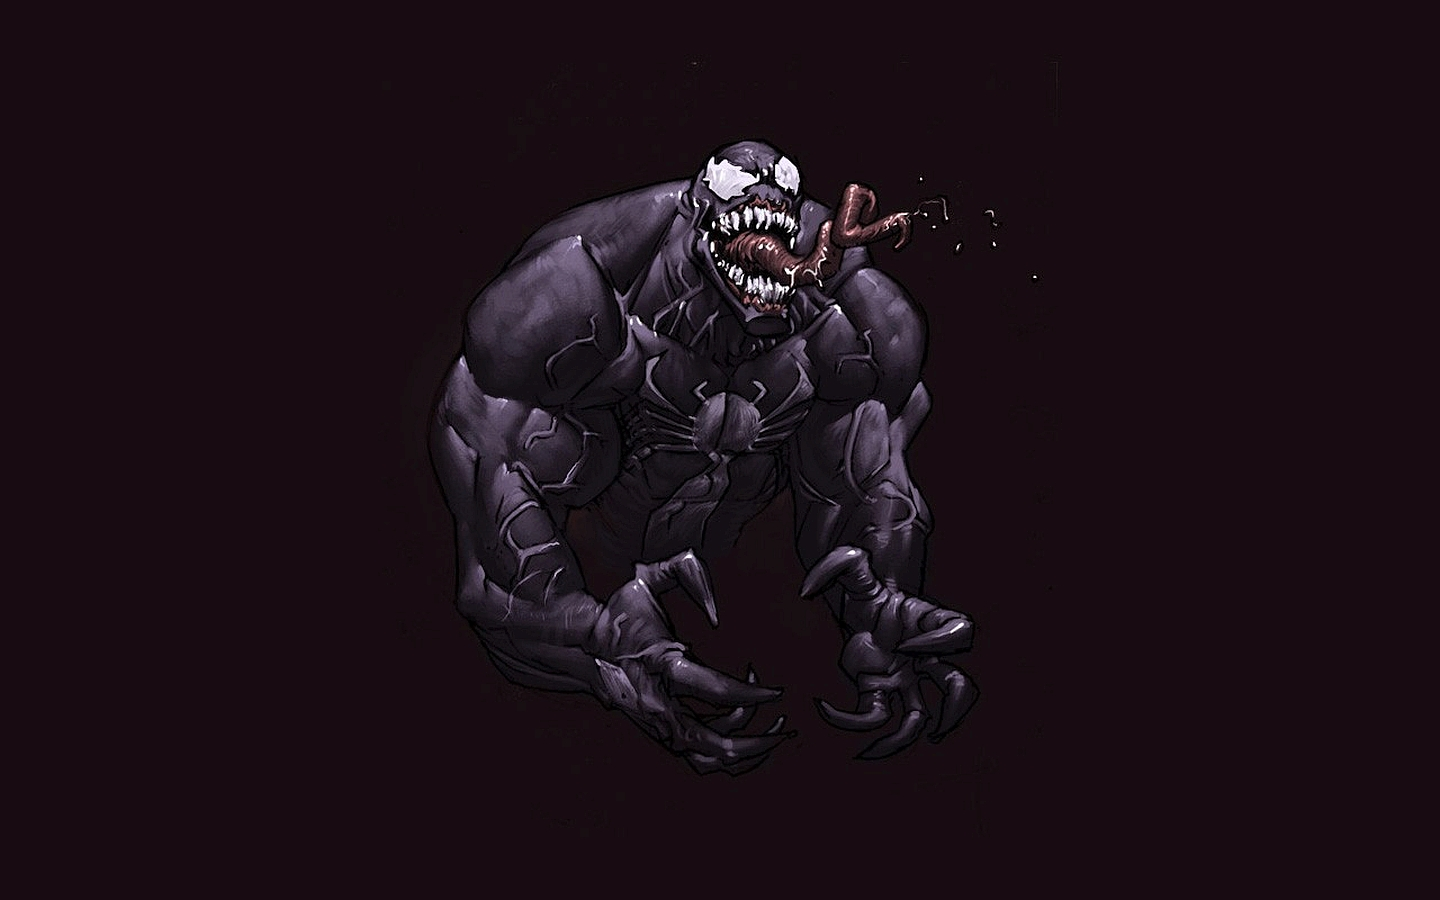 Venom Wallpapers Pictures Images: Venom Wallpaper And Background Image